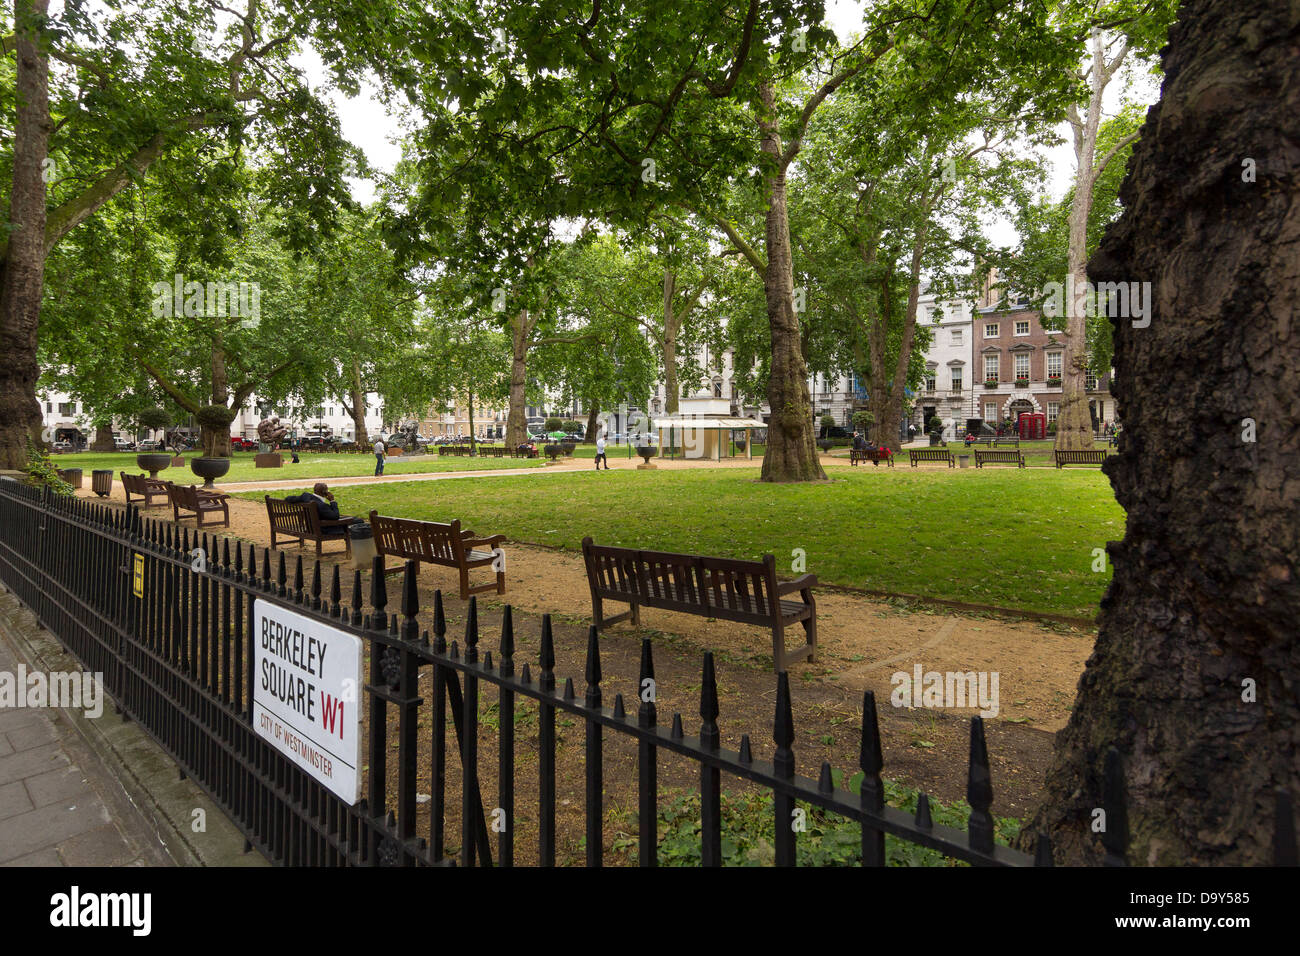 Berkeley Square, Mayfair, London - Stock Image